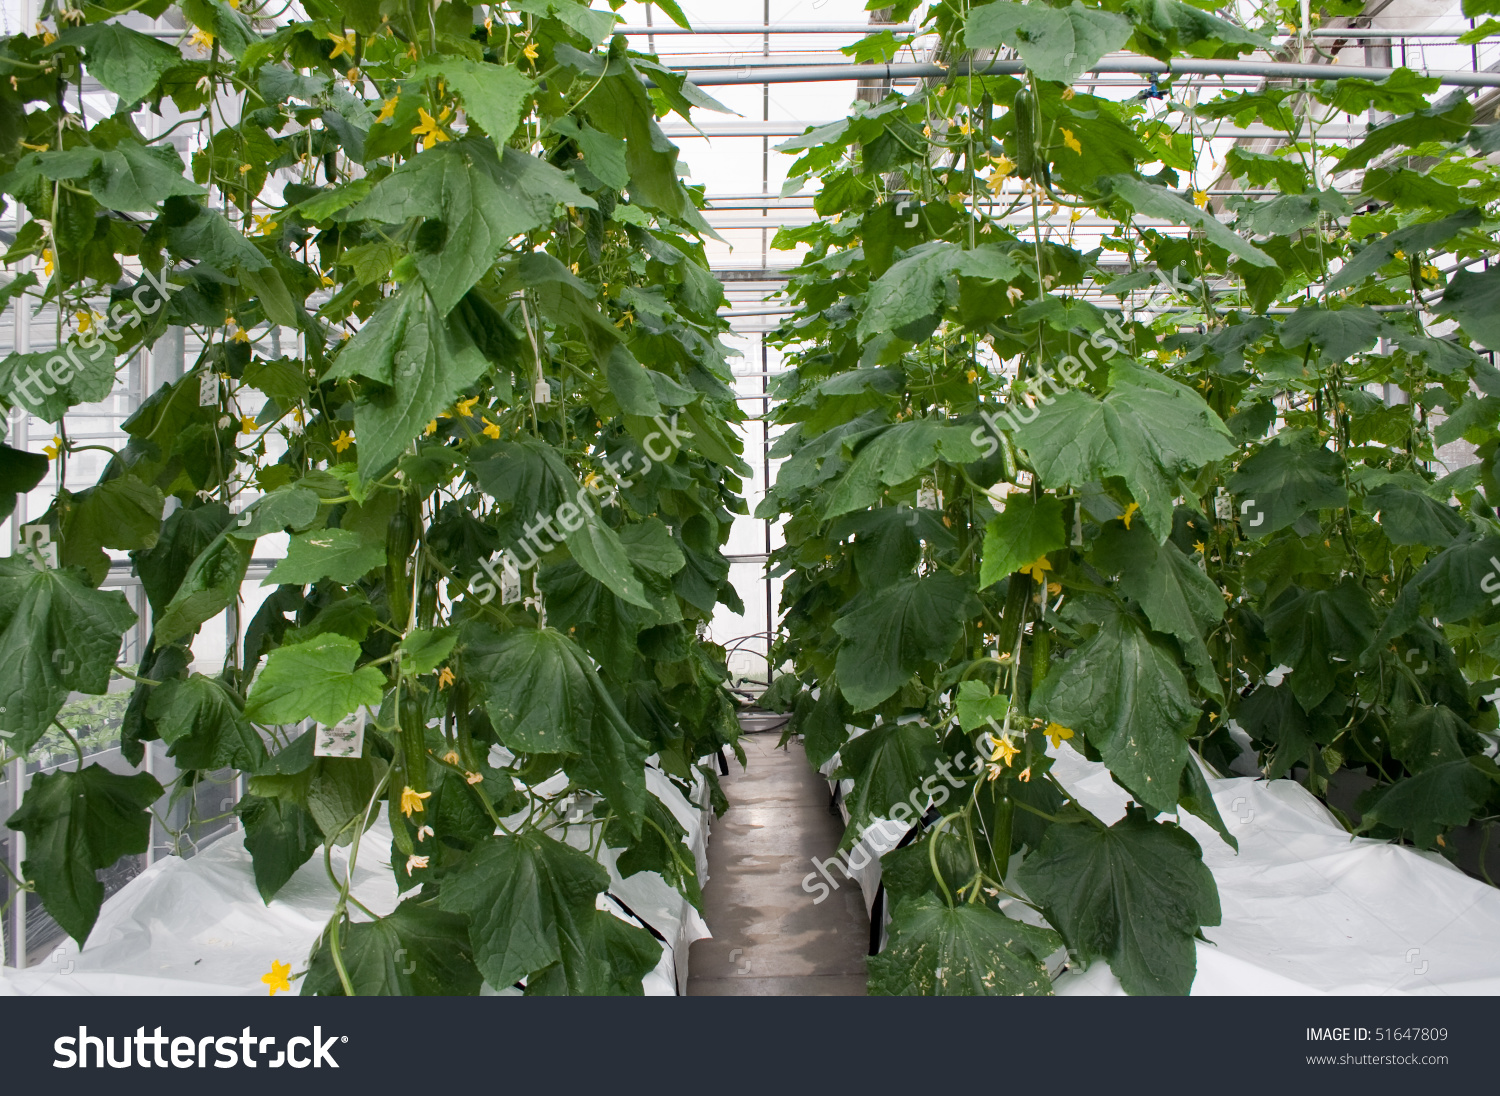 Cucumber Plants Stock Photo 51647809 : Shutterstock.